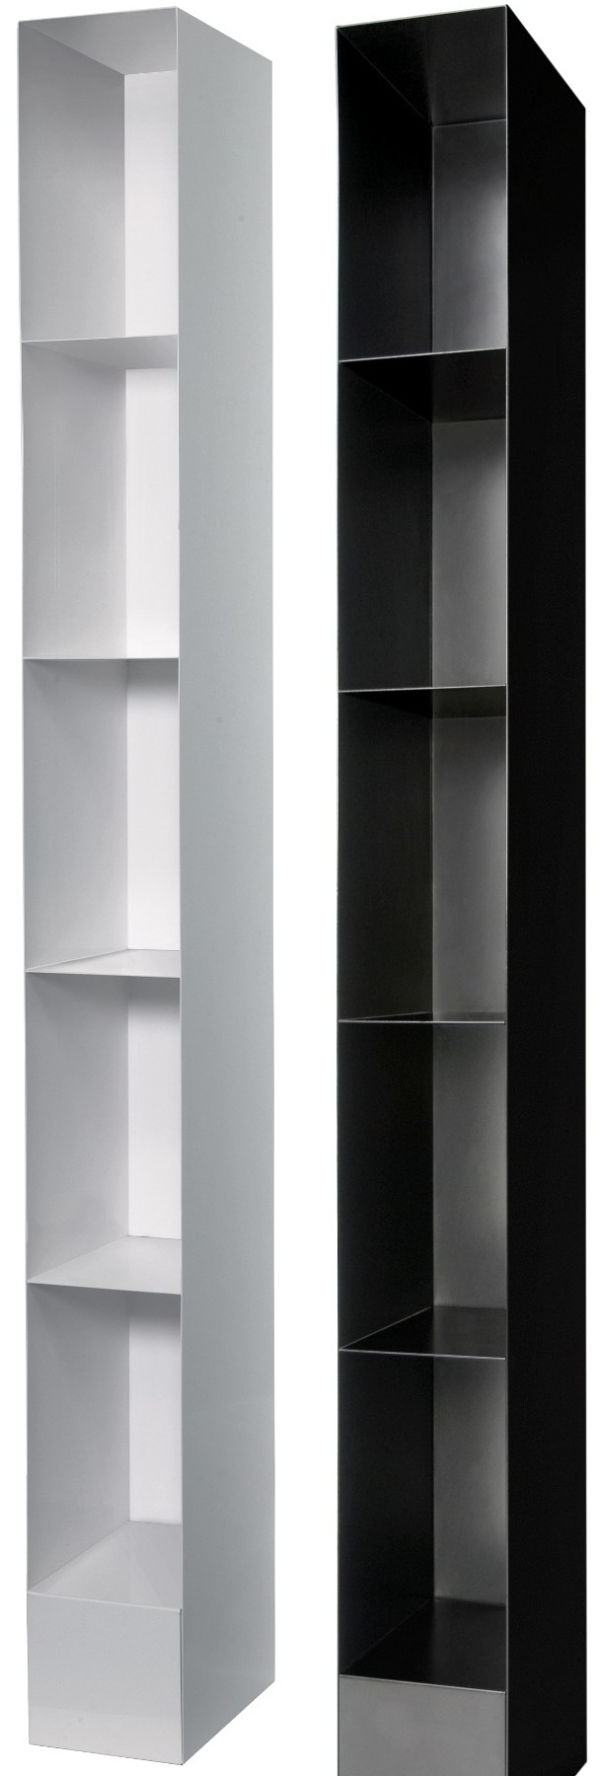 Most Current Slim Bookcases For Tall White Slim Bookcase Wash Bookcasetall Black With Glass Doors (View 7 of 15)